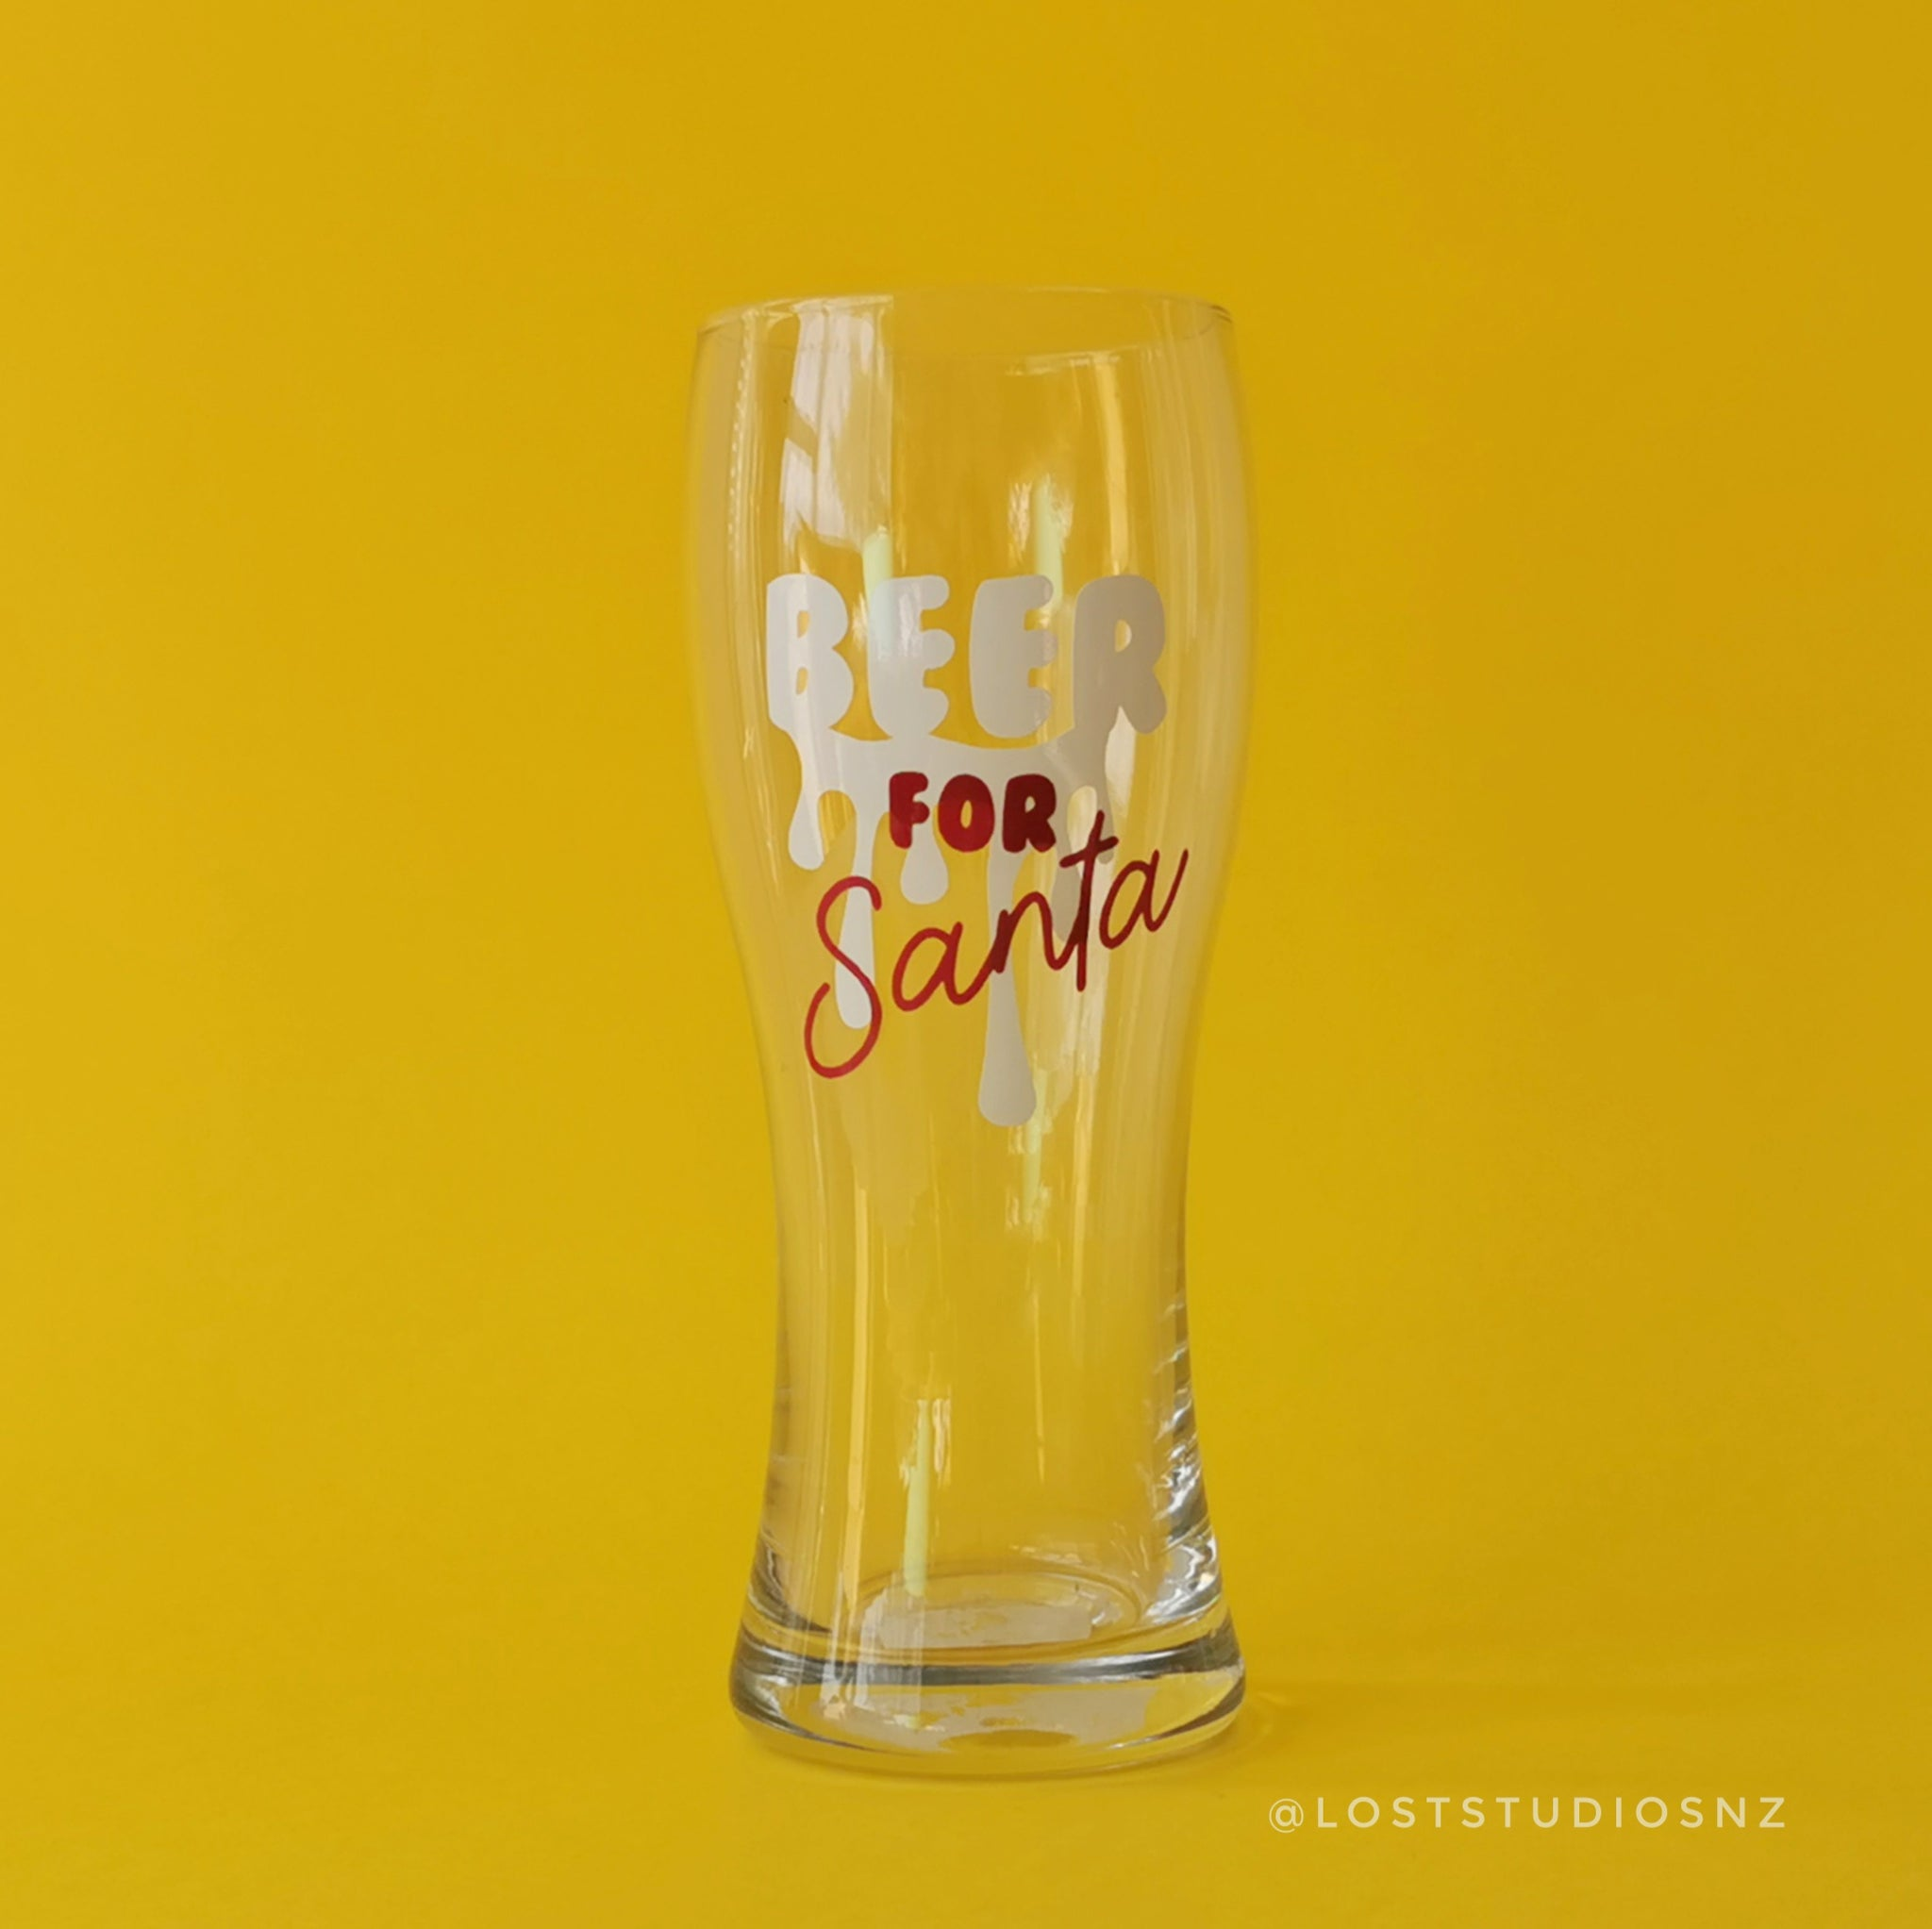 Beer for Santa Pilsner